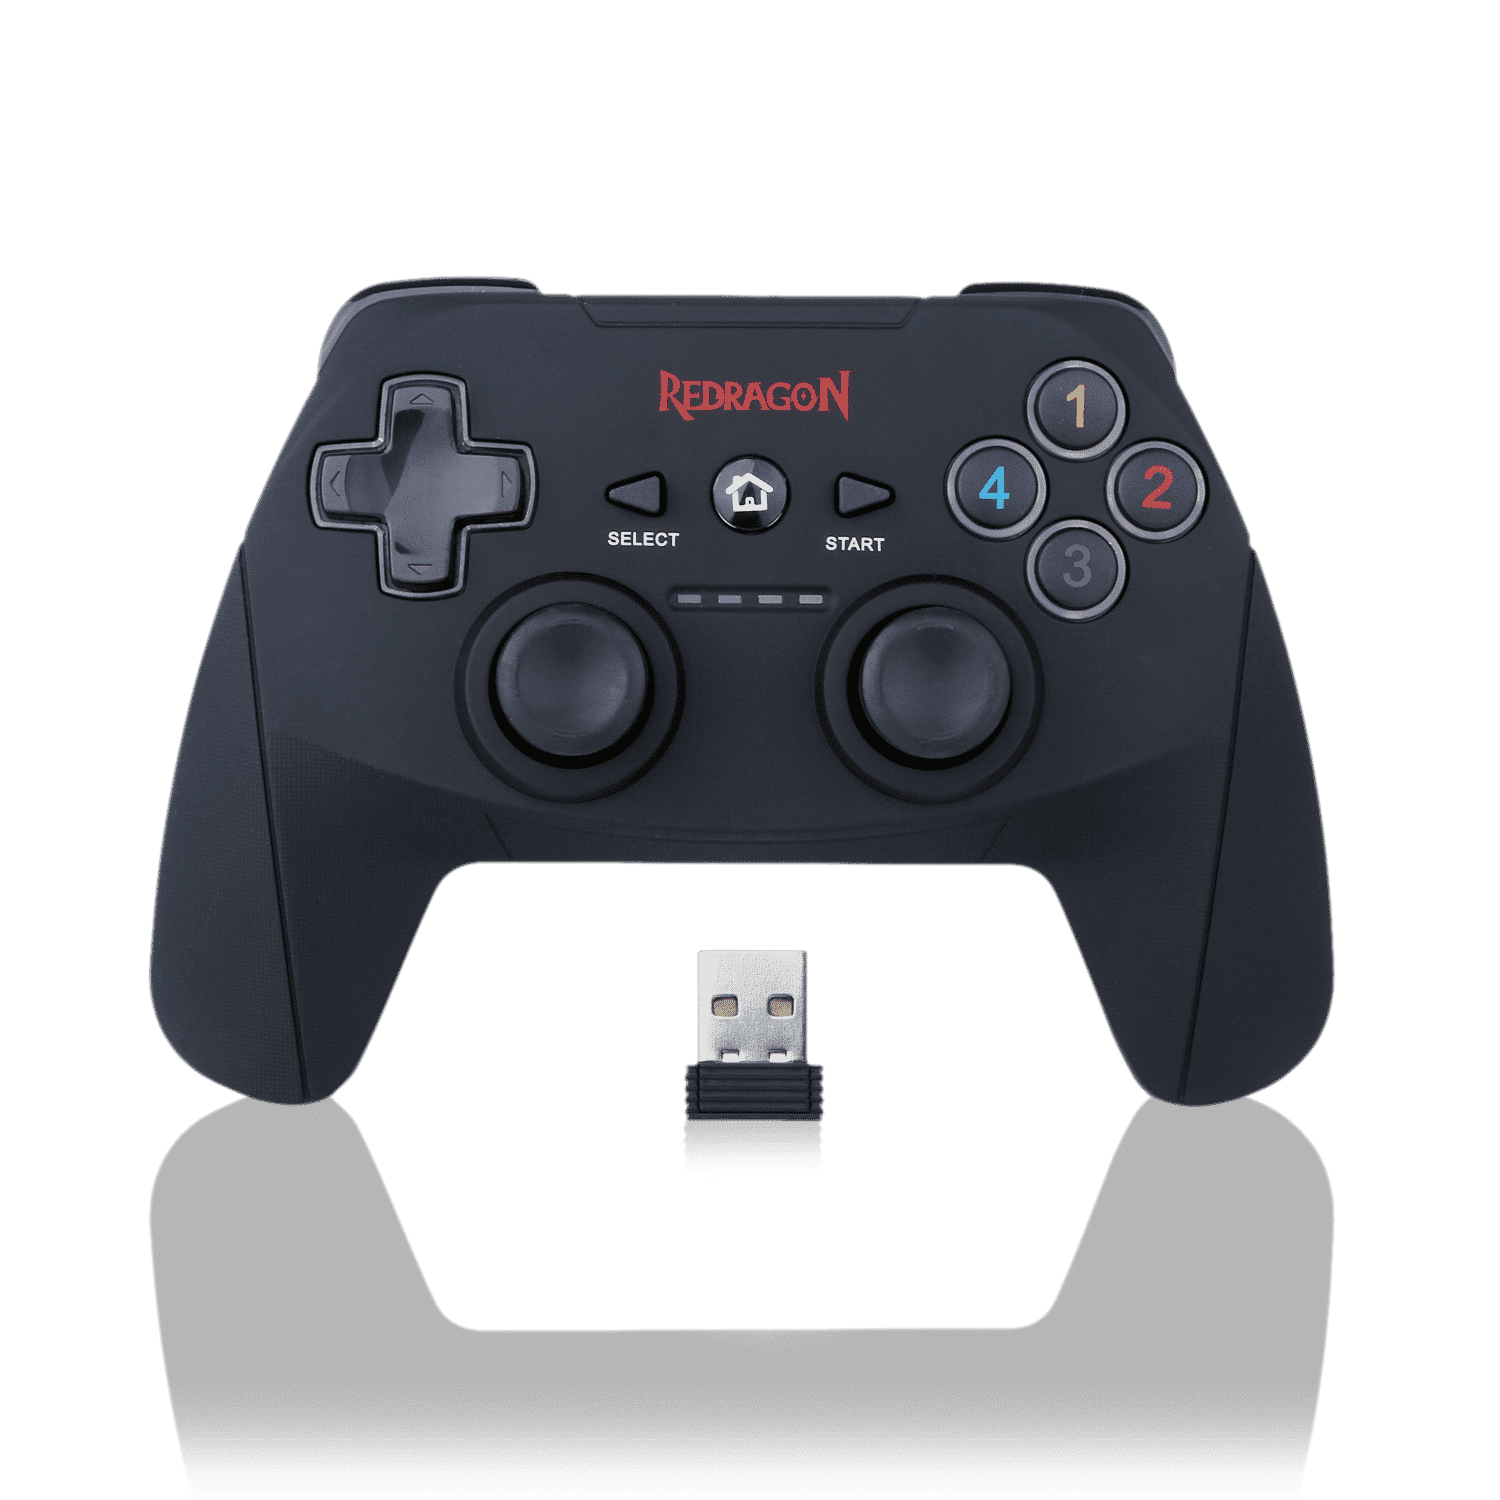 Redragon G808 Gamepad, PC Game Controller, Joystick with Dual Vibration, Harrow, for Windows PC, PS3, Playstation, Android, Xbox 360